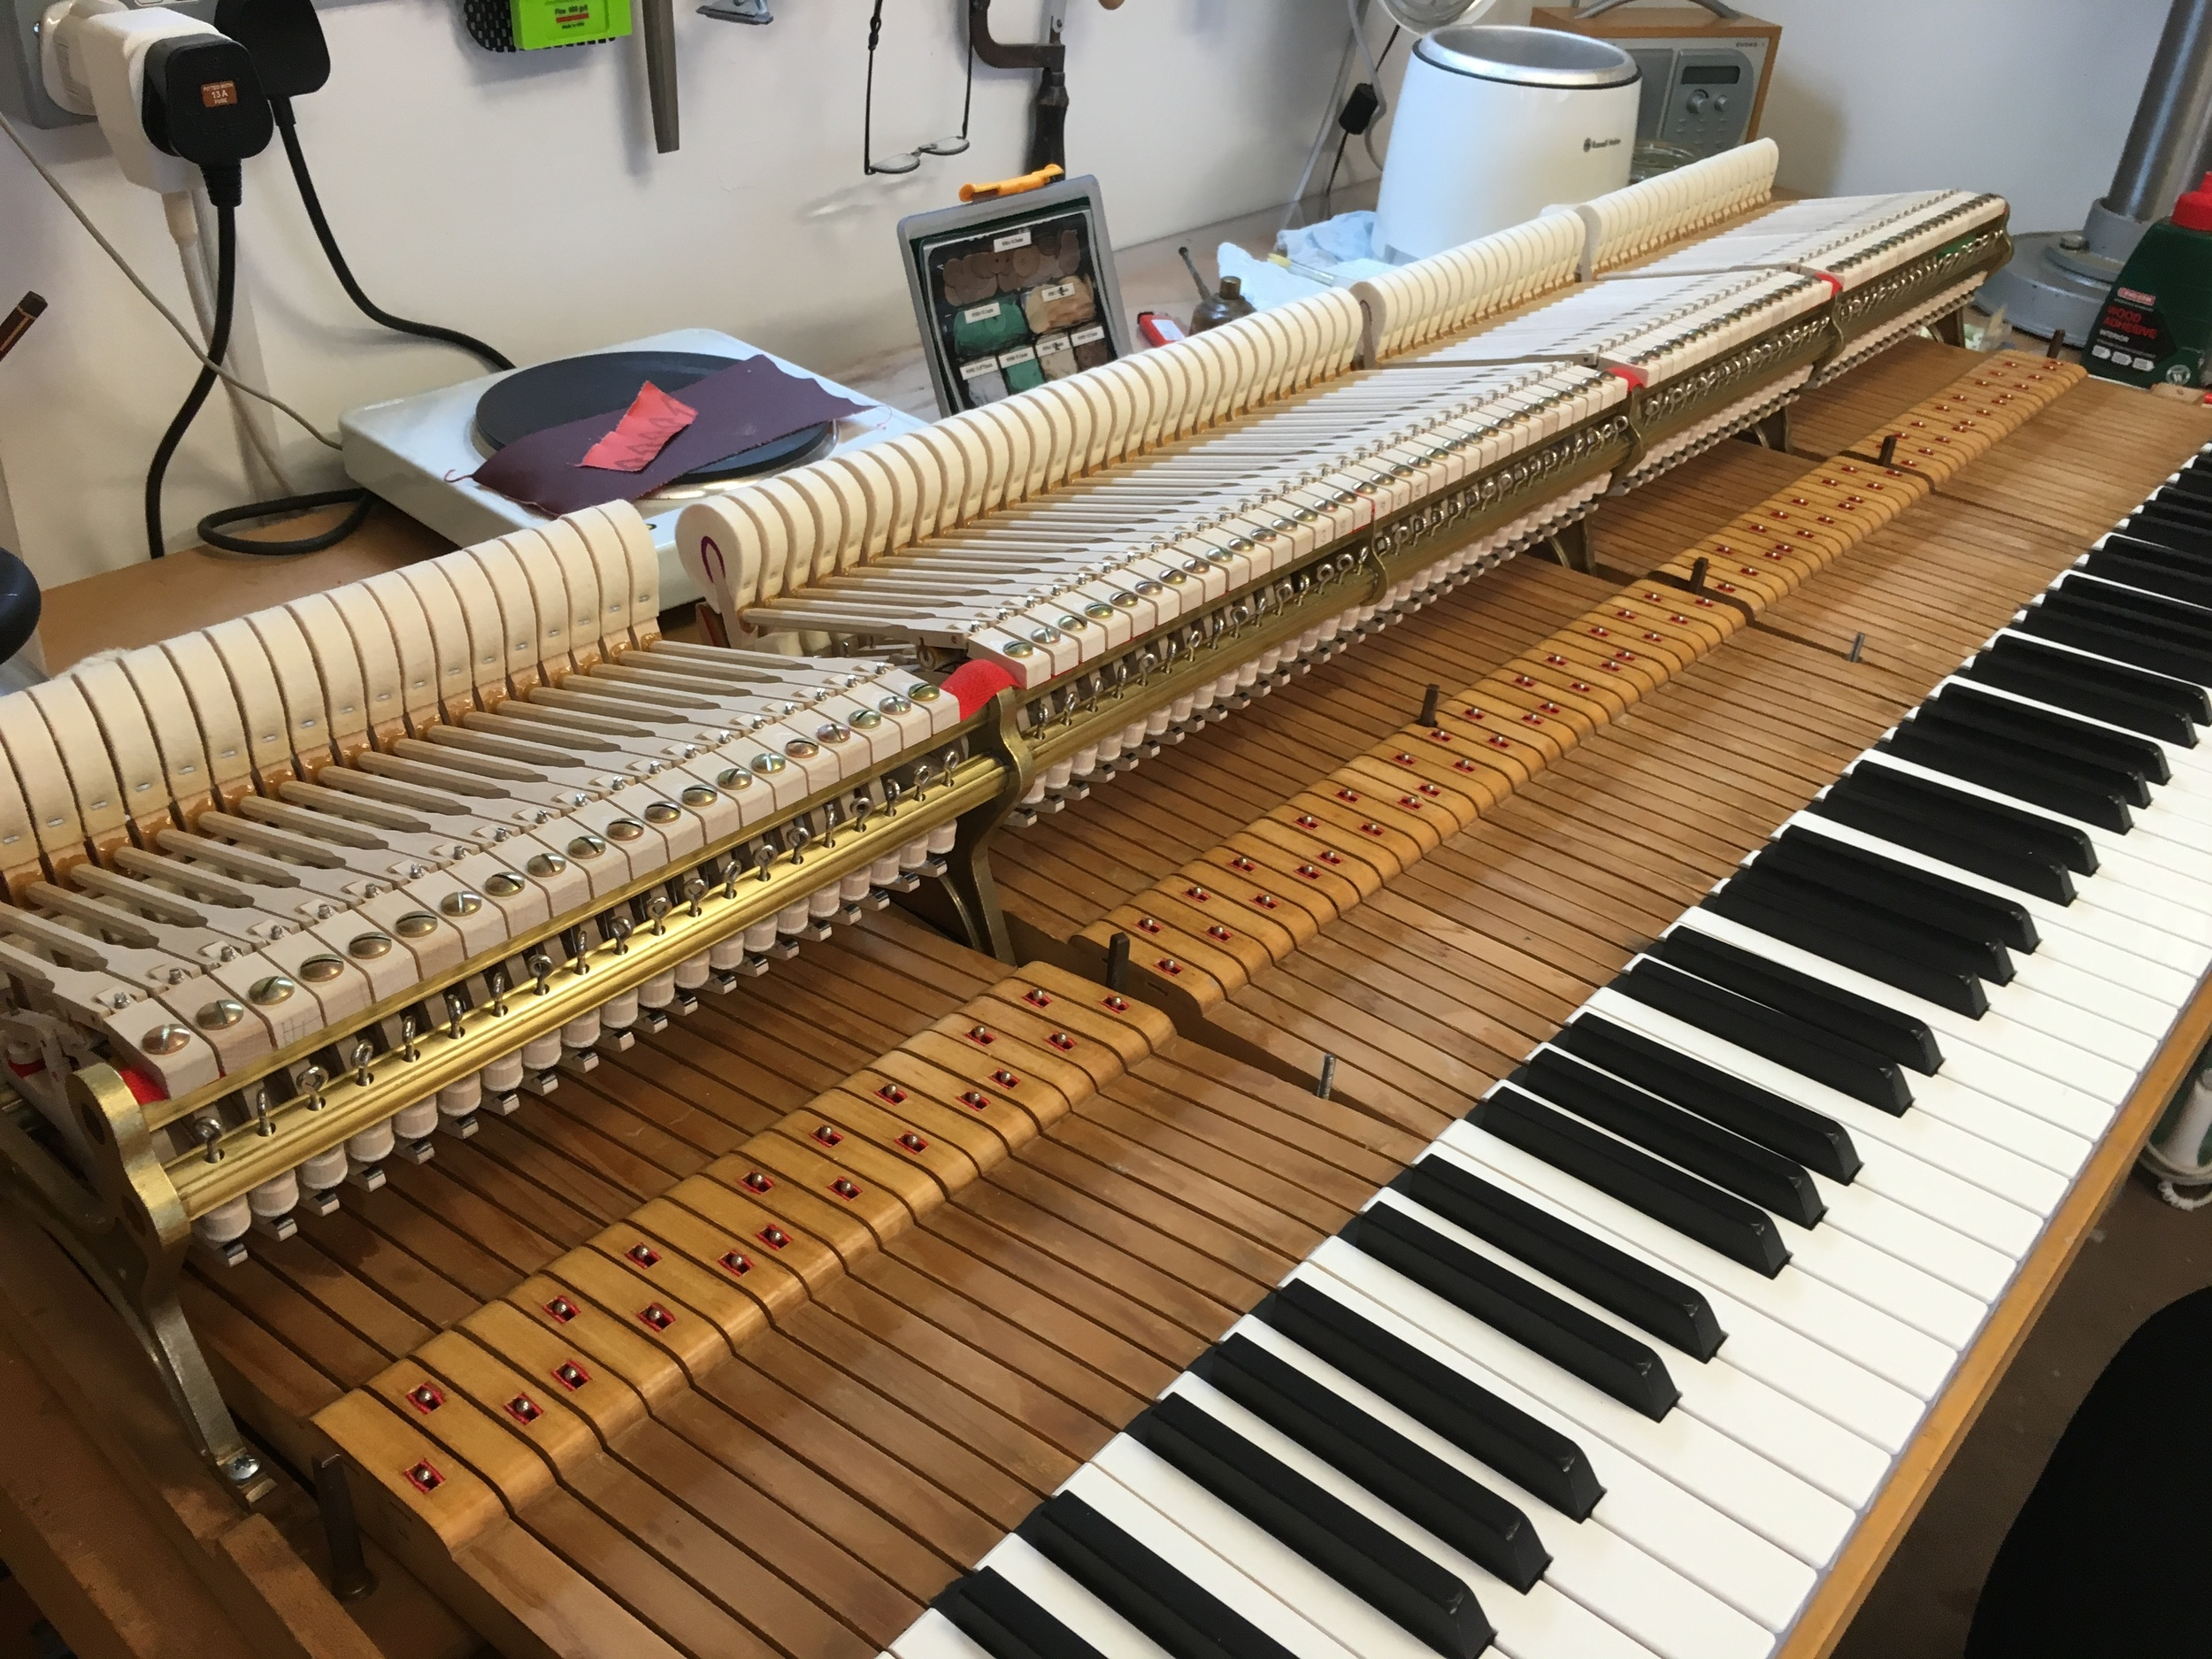 New action fitted to re-covered keys - prior to key wood cleaning